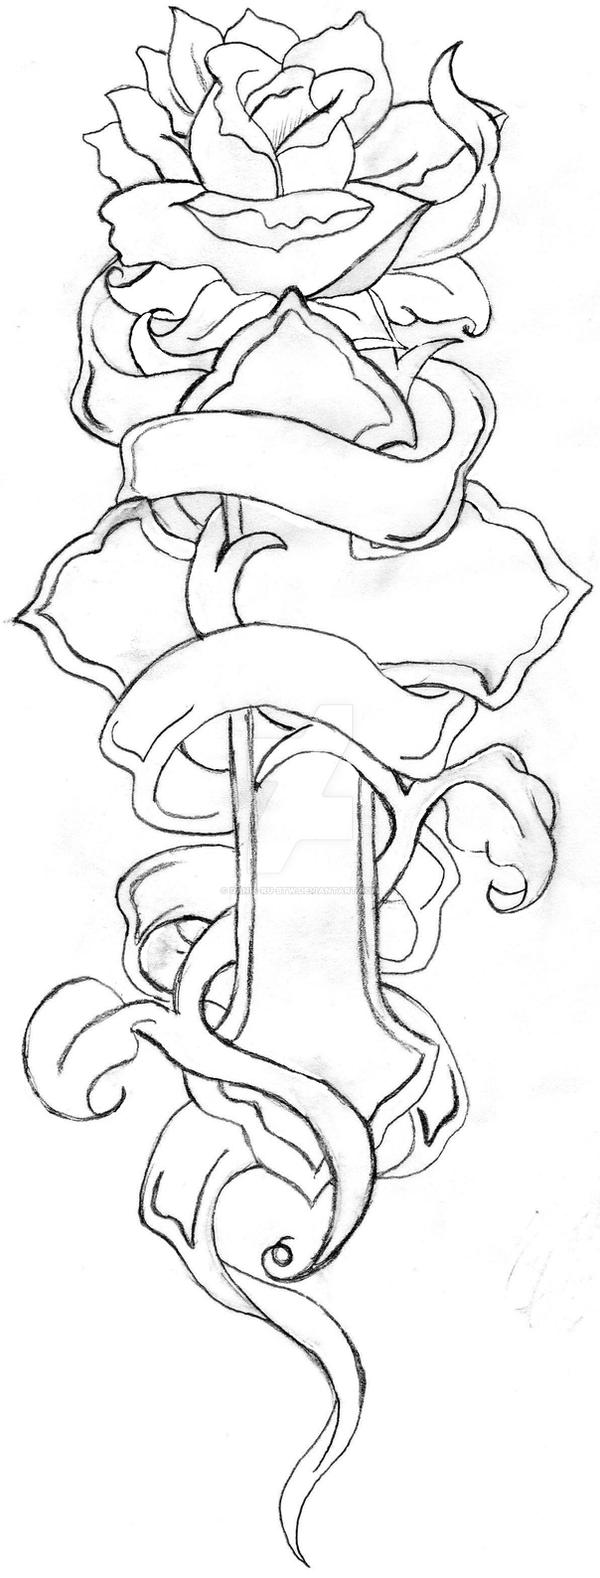 Line Art Rose Tattoo : Cross and rose line drawing by danie ru btw on deviantart